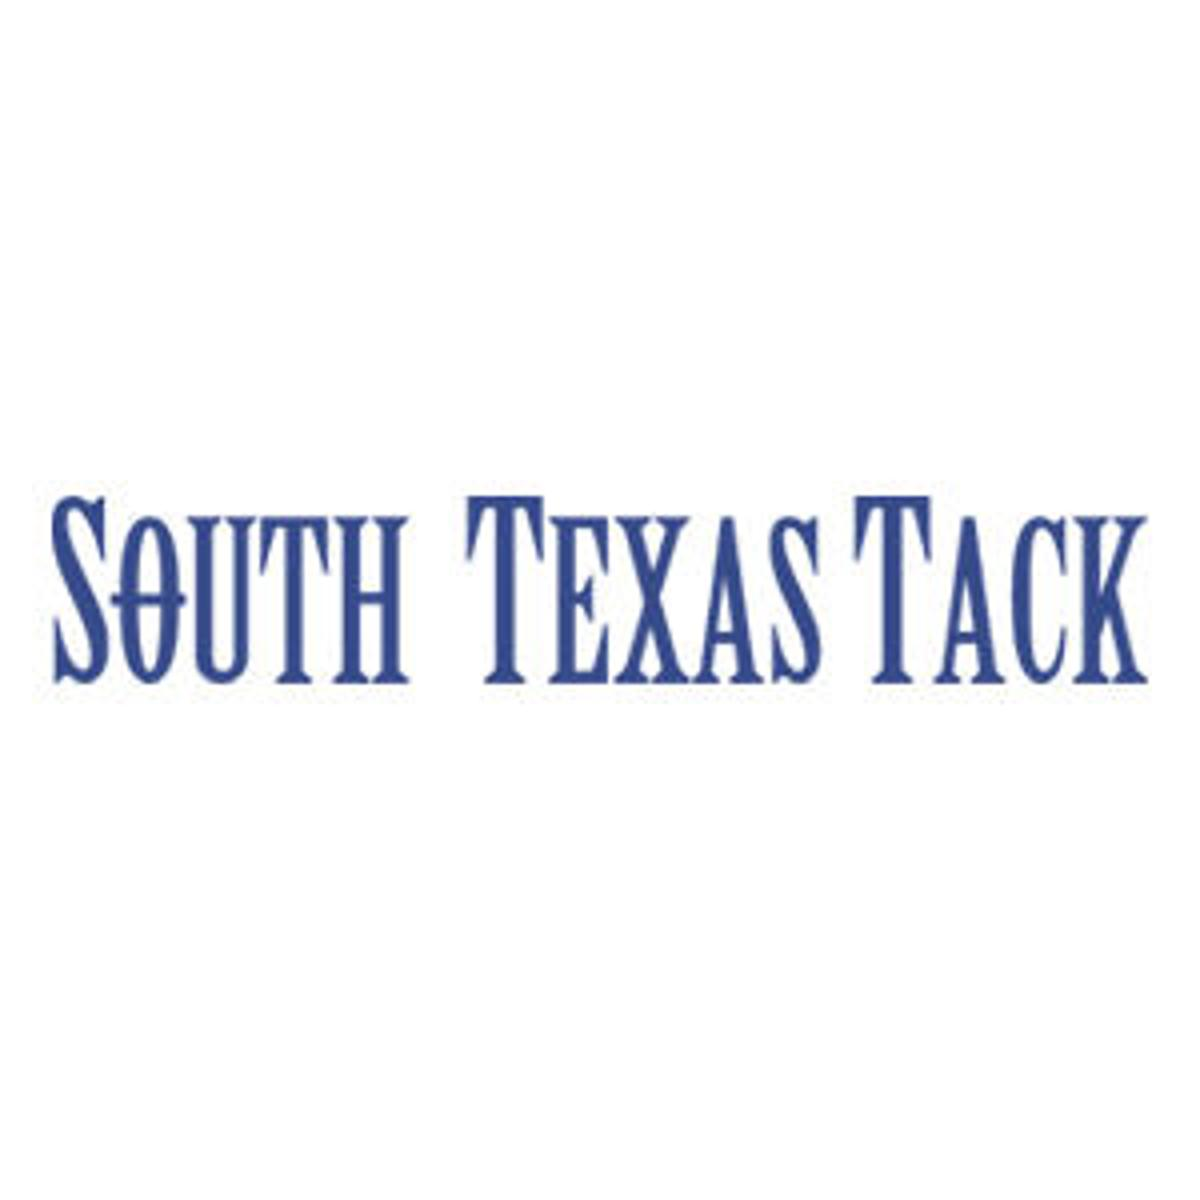 90075717a South Texas Tack store near Brenham begins expansion | Local News ...